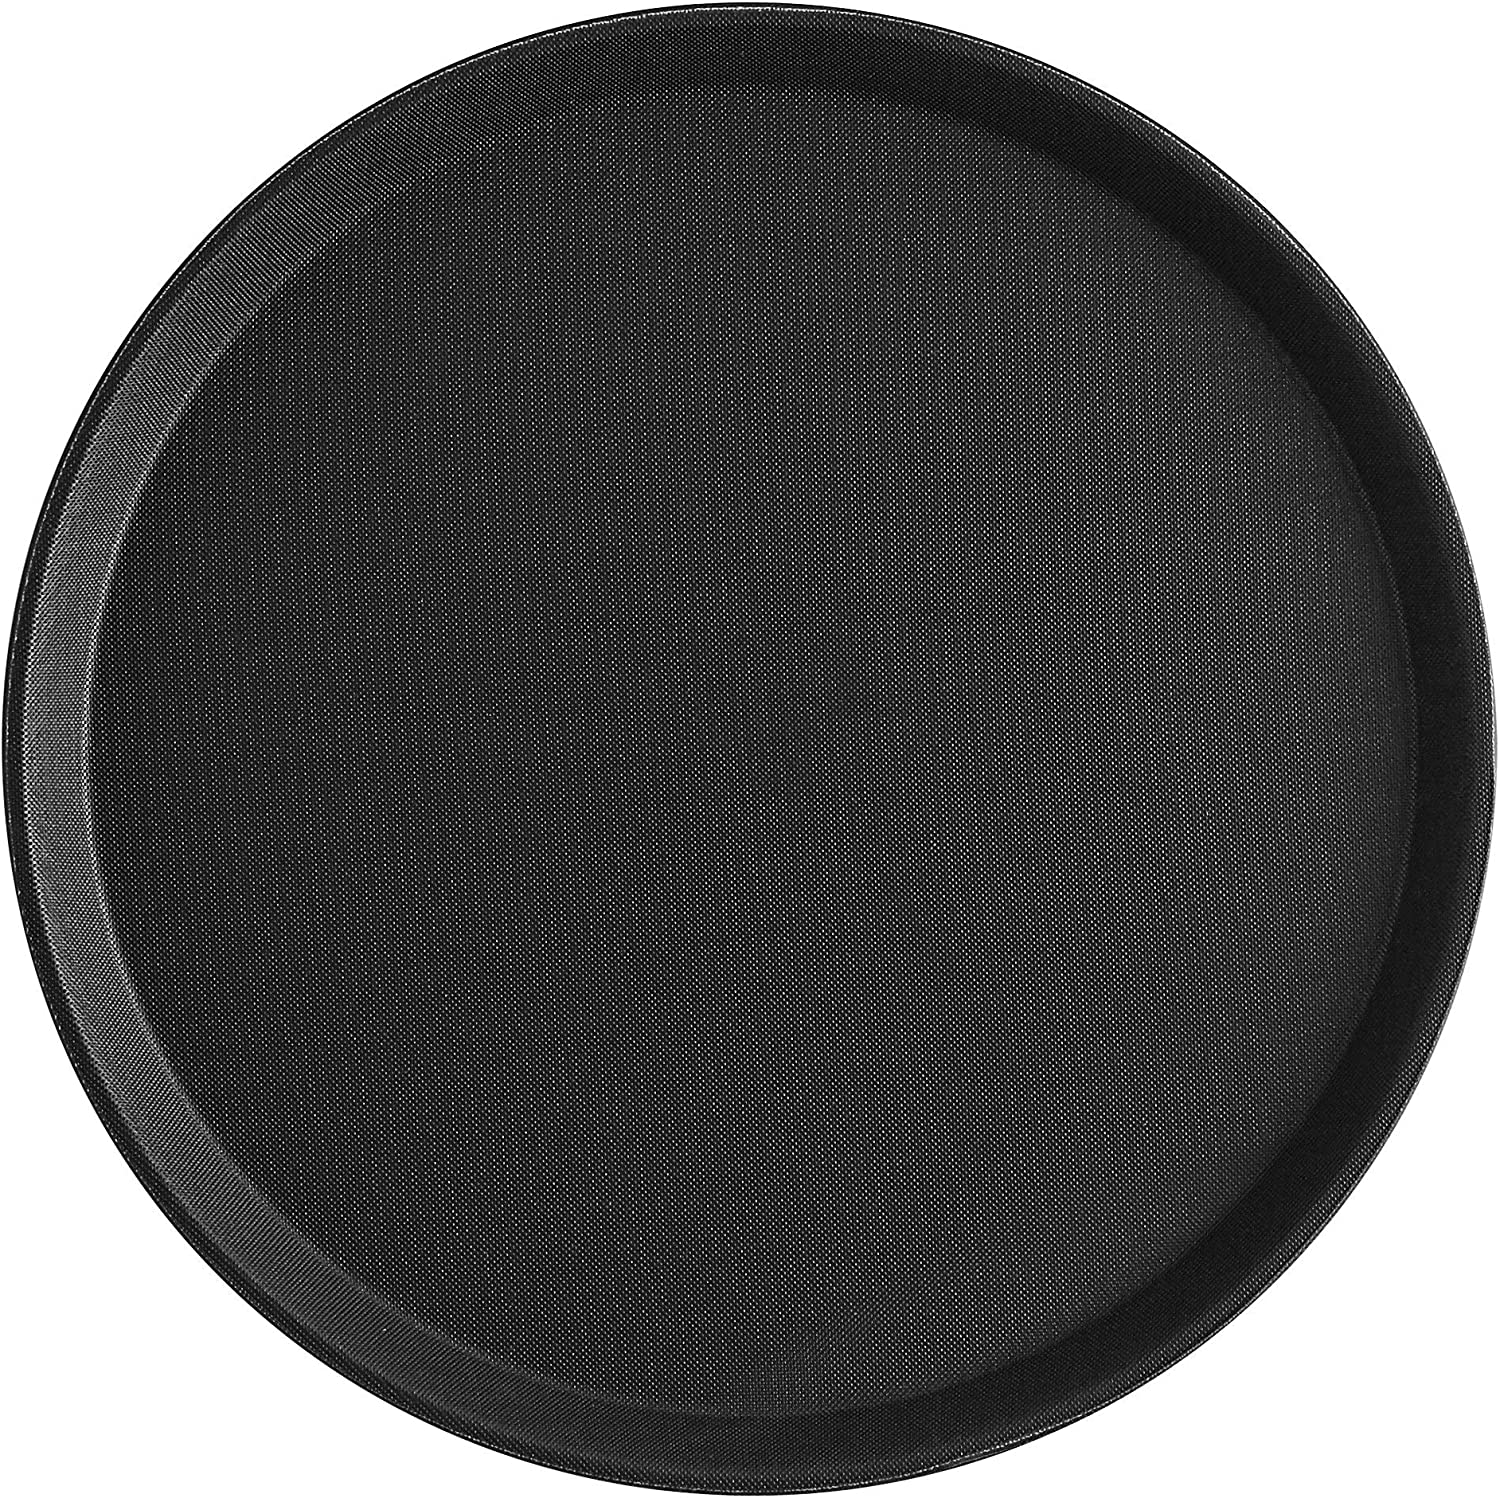 MM Foodservice Set of 2 Non-Slip Serving Tray, Round Non-skid Tray, Professional 14 inch heavy duty serving tray, Black